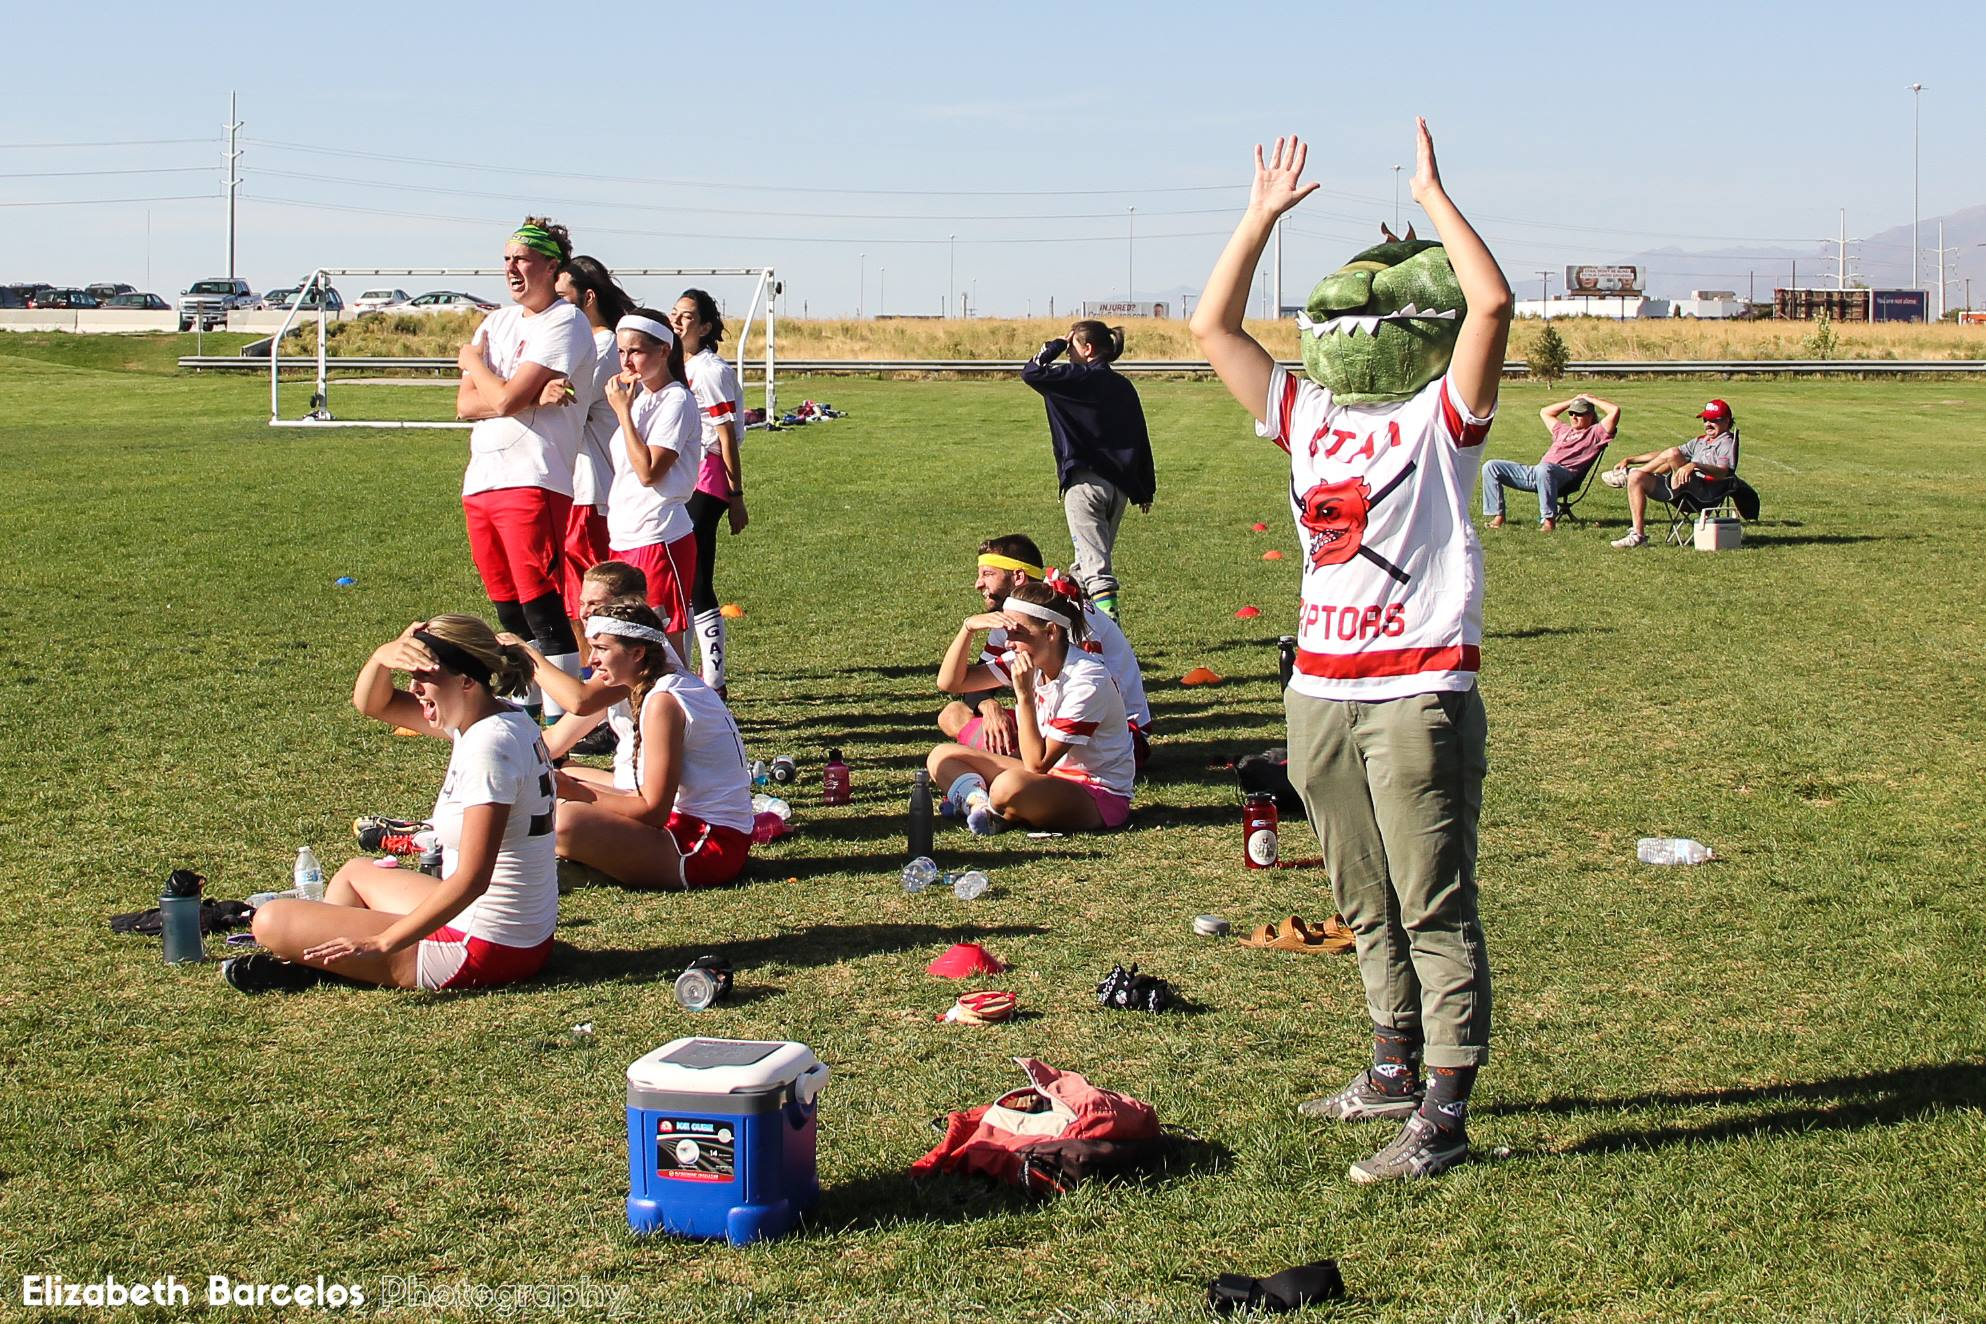 University of Utah Quidditch team. Photo credit: Elizabeth Barcelos Photography.